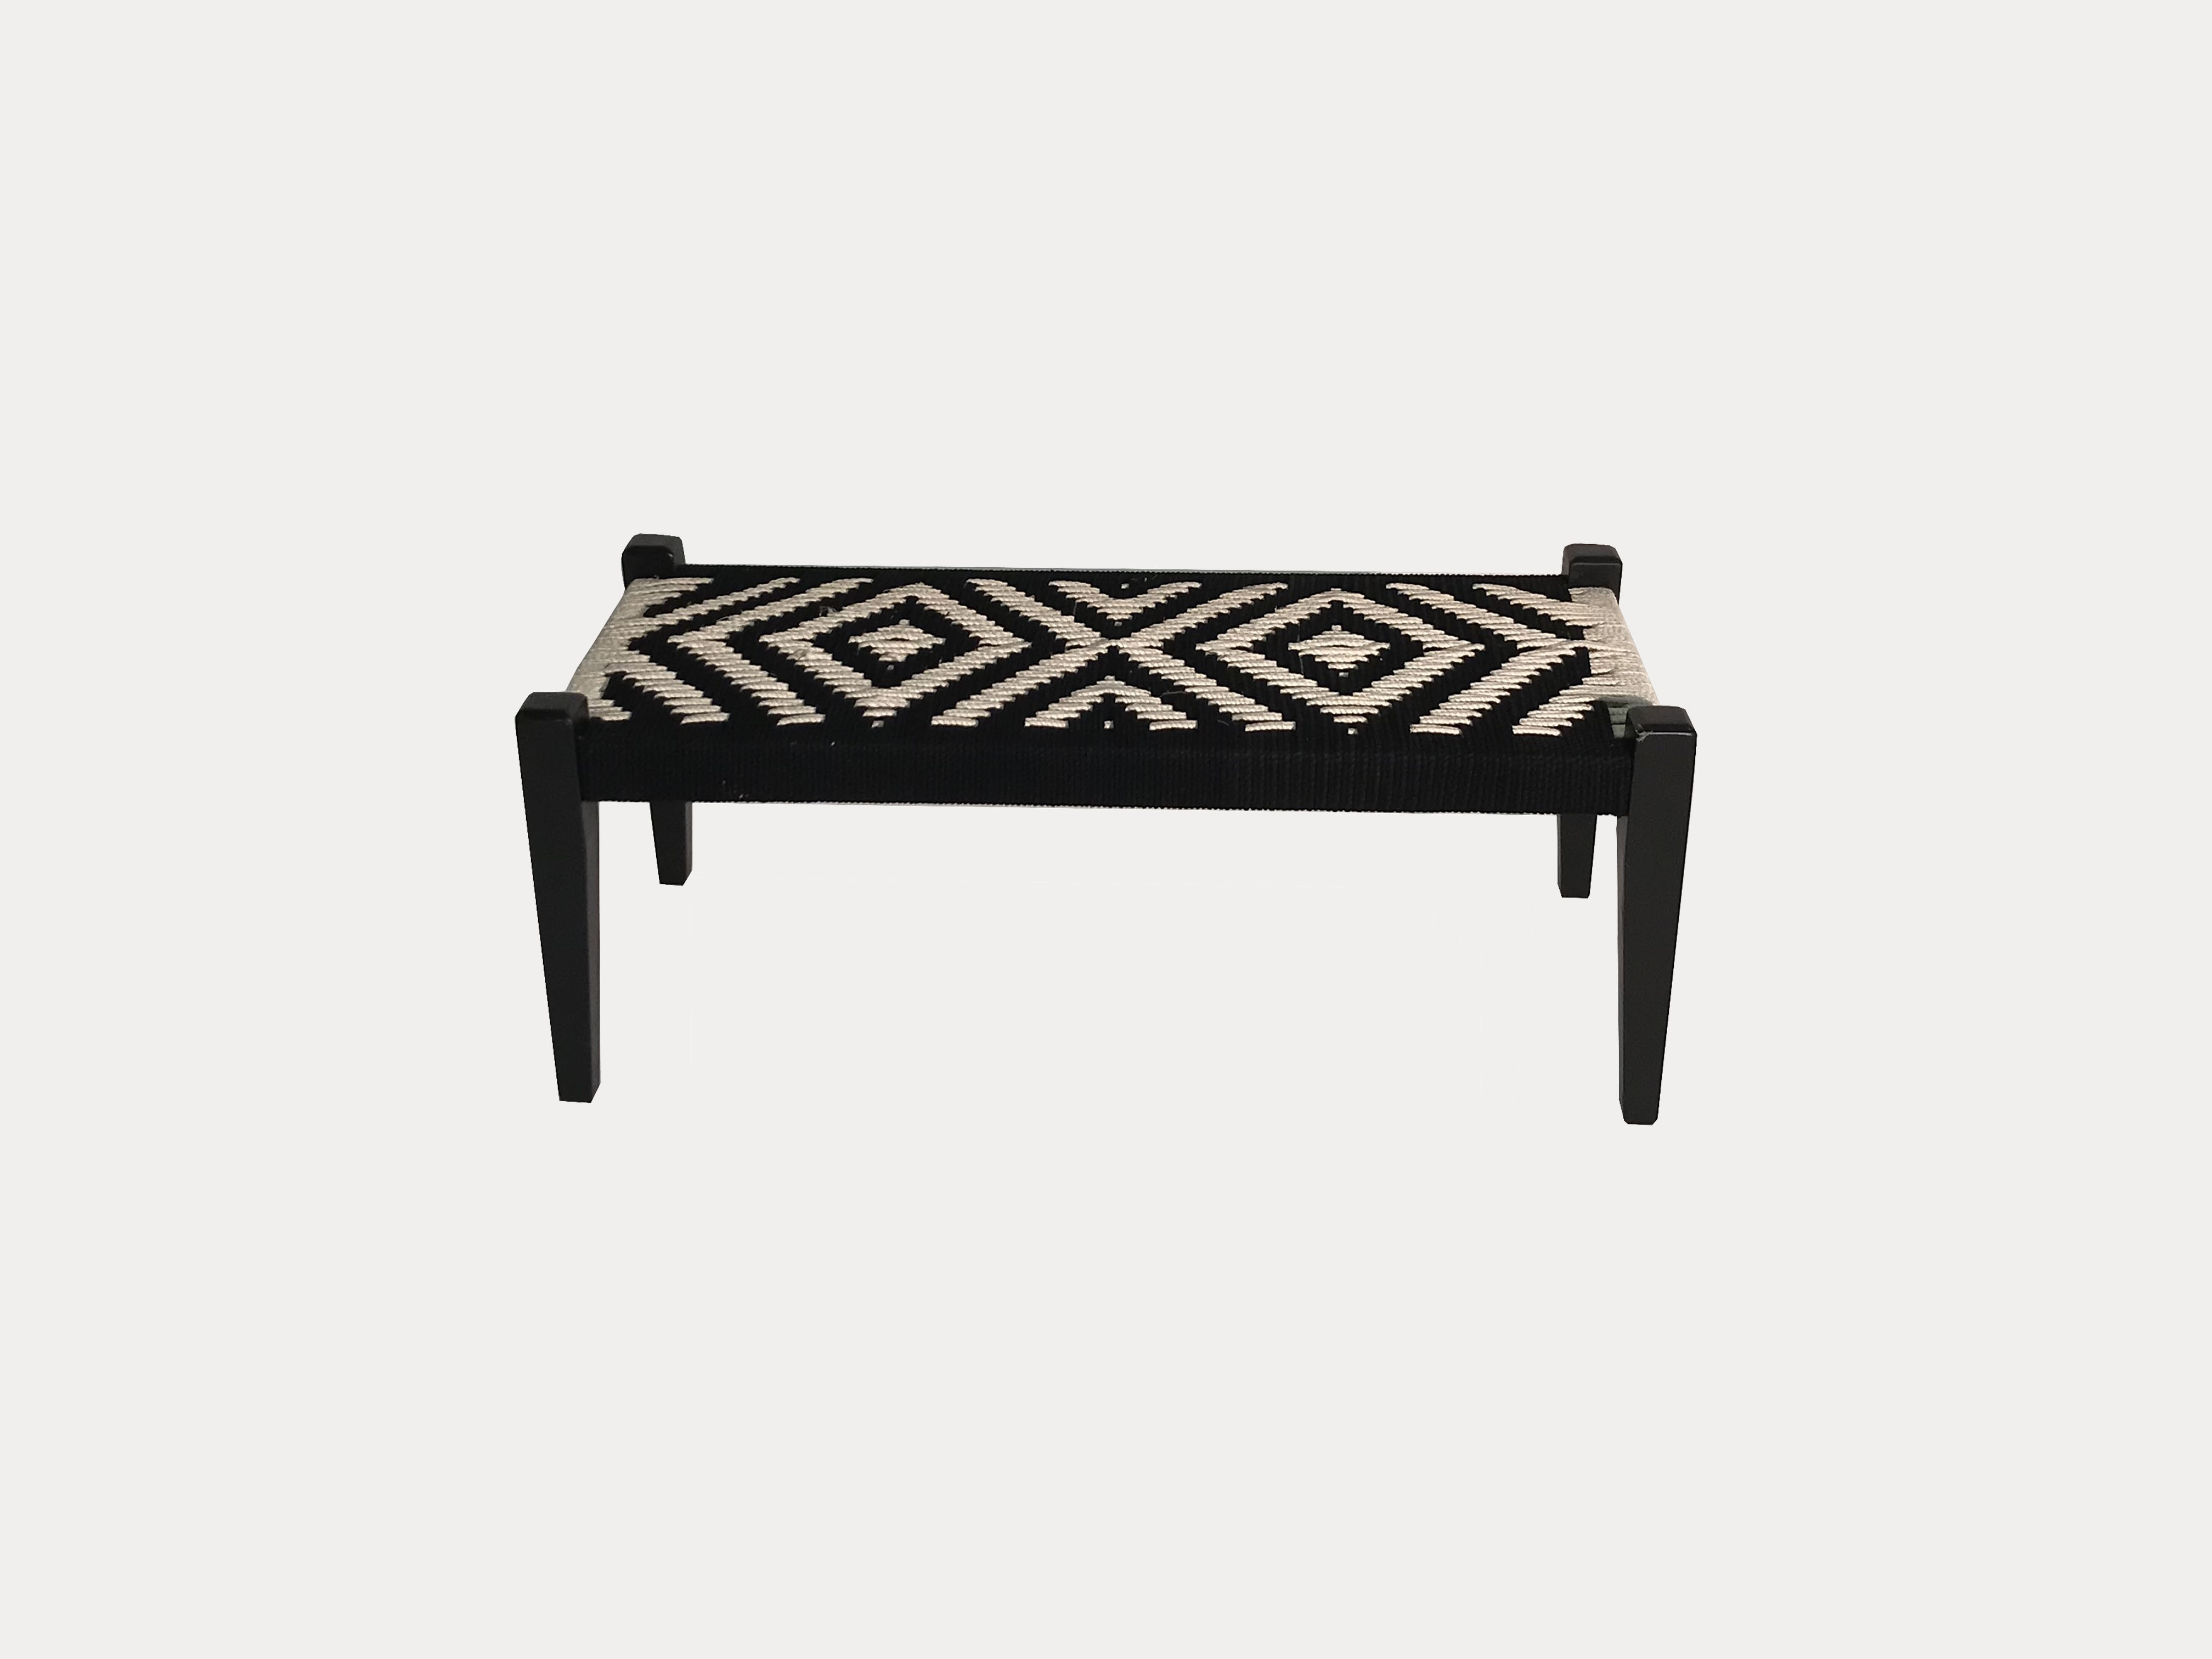 Swell Black And White Woven Bench Pdpeps Interior Chair Design Pdpepsorg